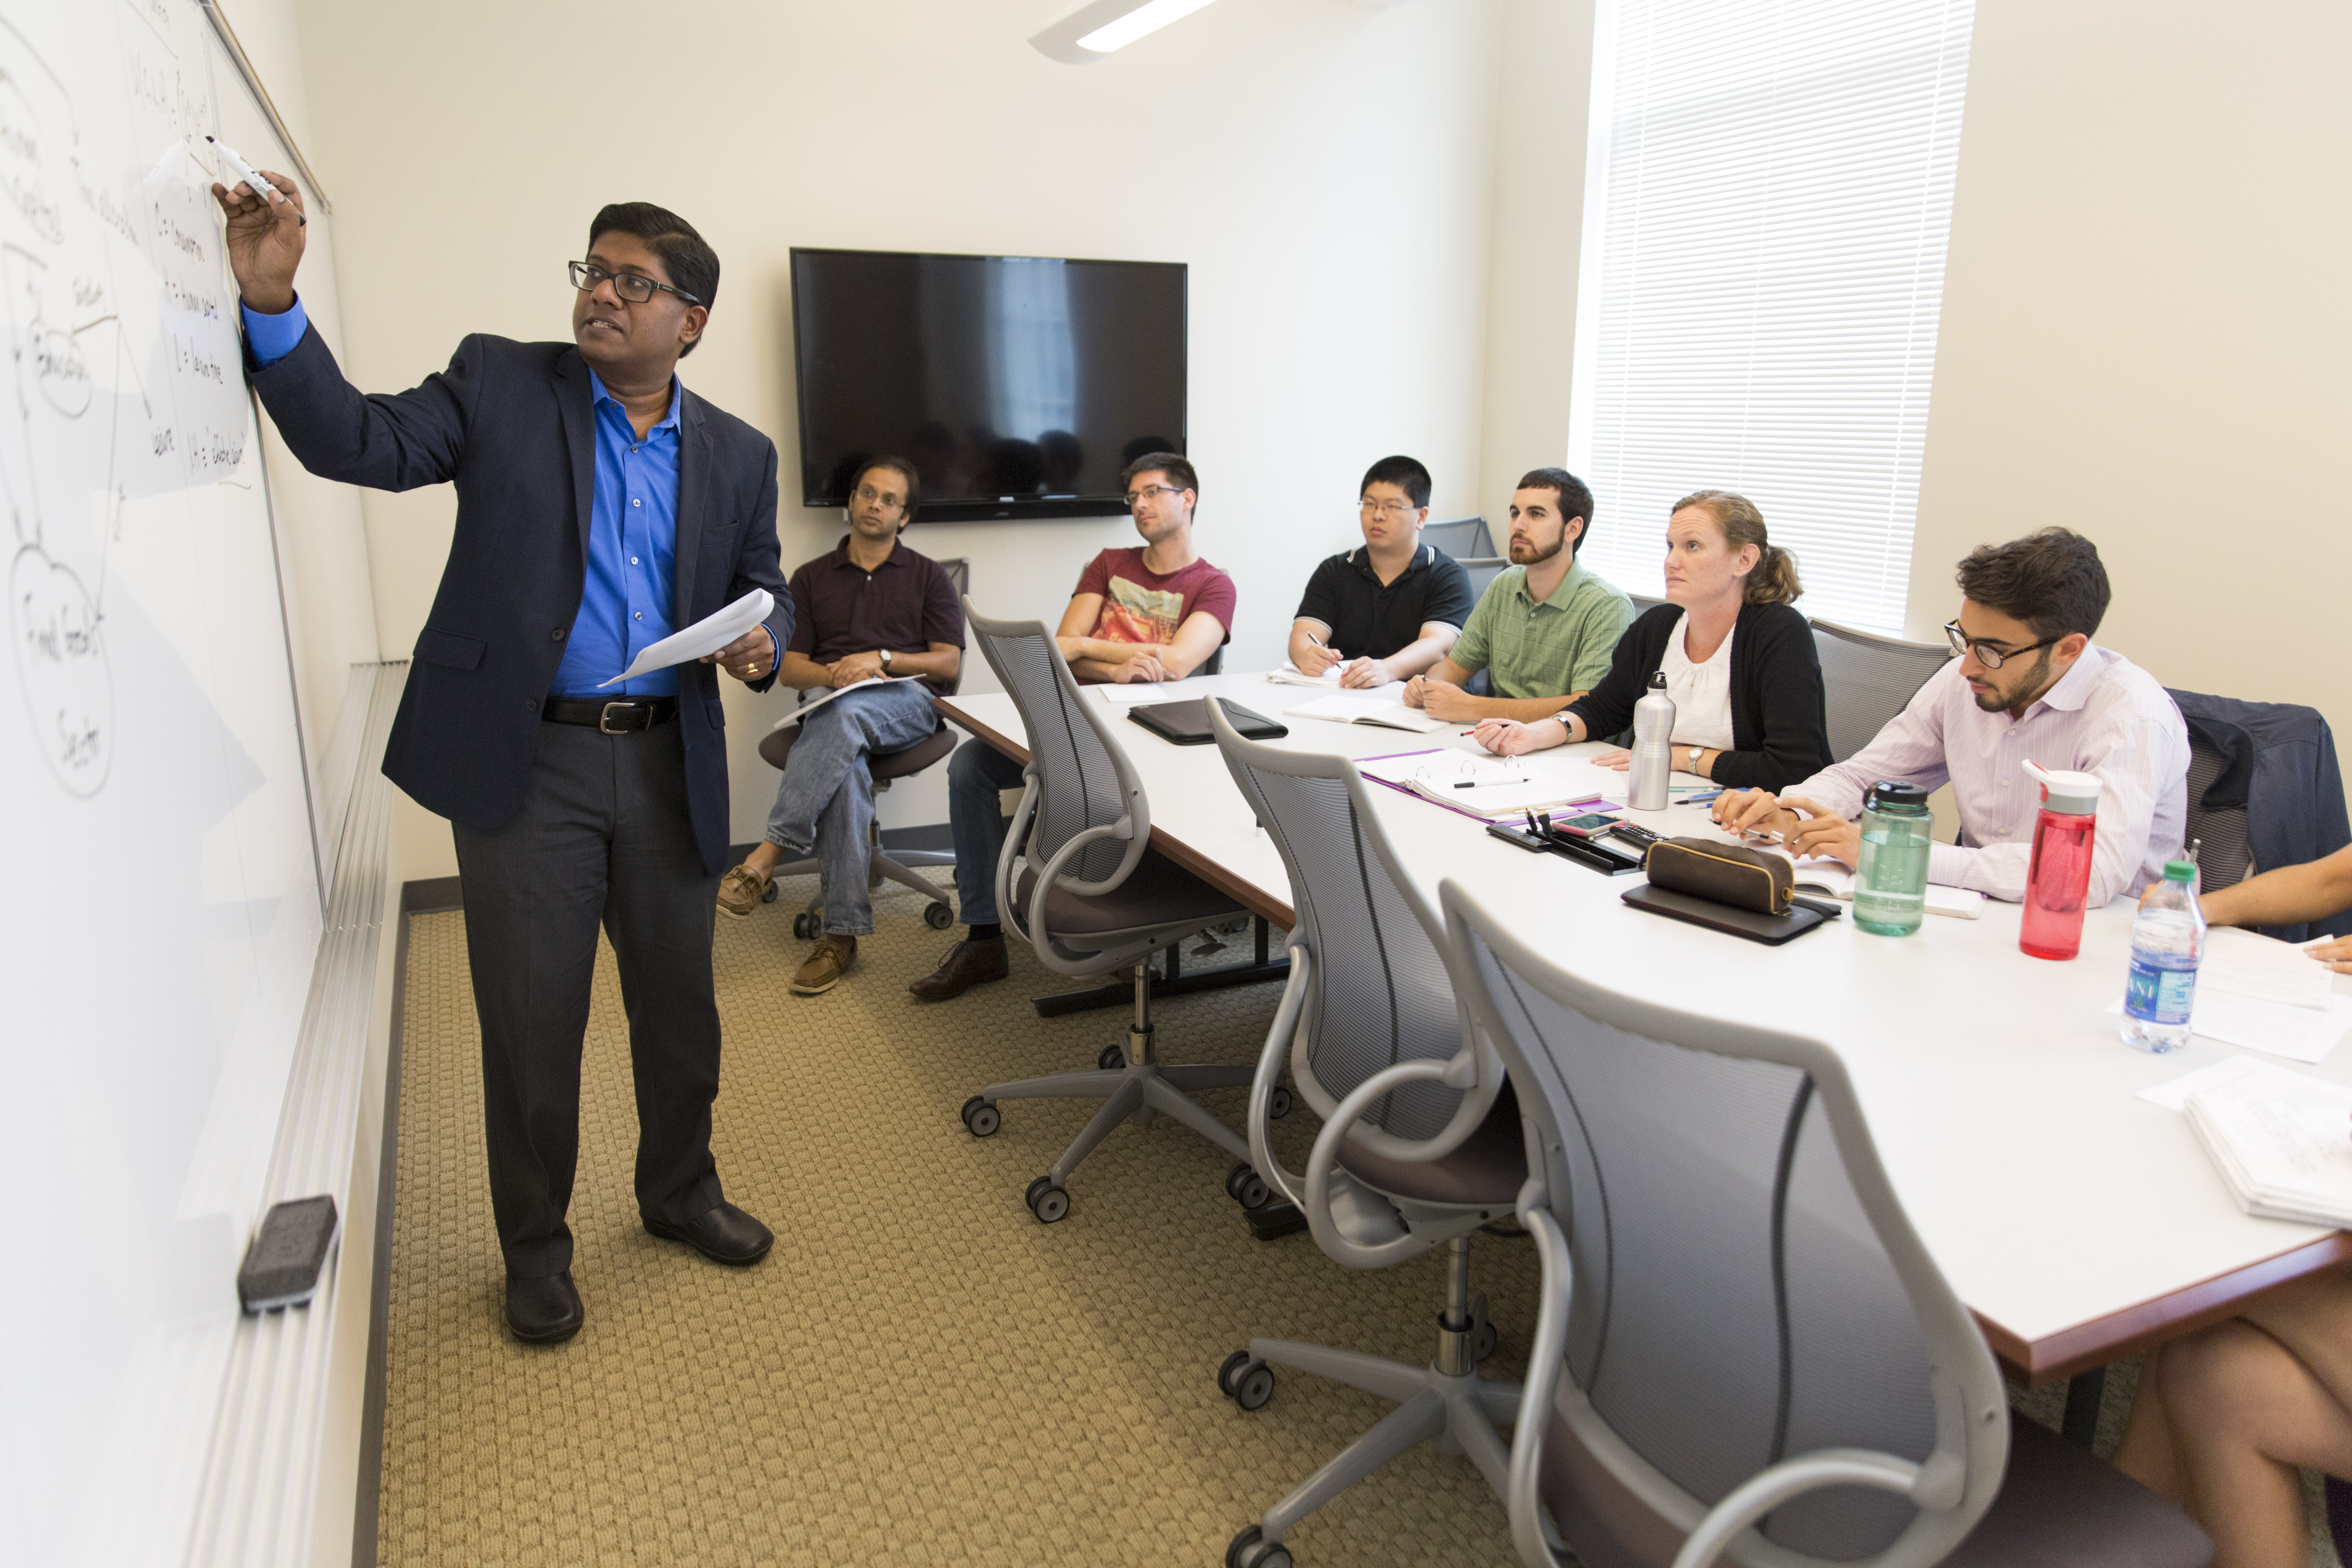 Santanu Chatterjee, associate professor of economics in the Terry College of Business, is one of three recipients this year of the University's highest teaching honor this year, the Josiah Meigs Distinguished Teaching Professorship.